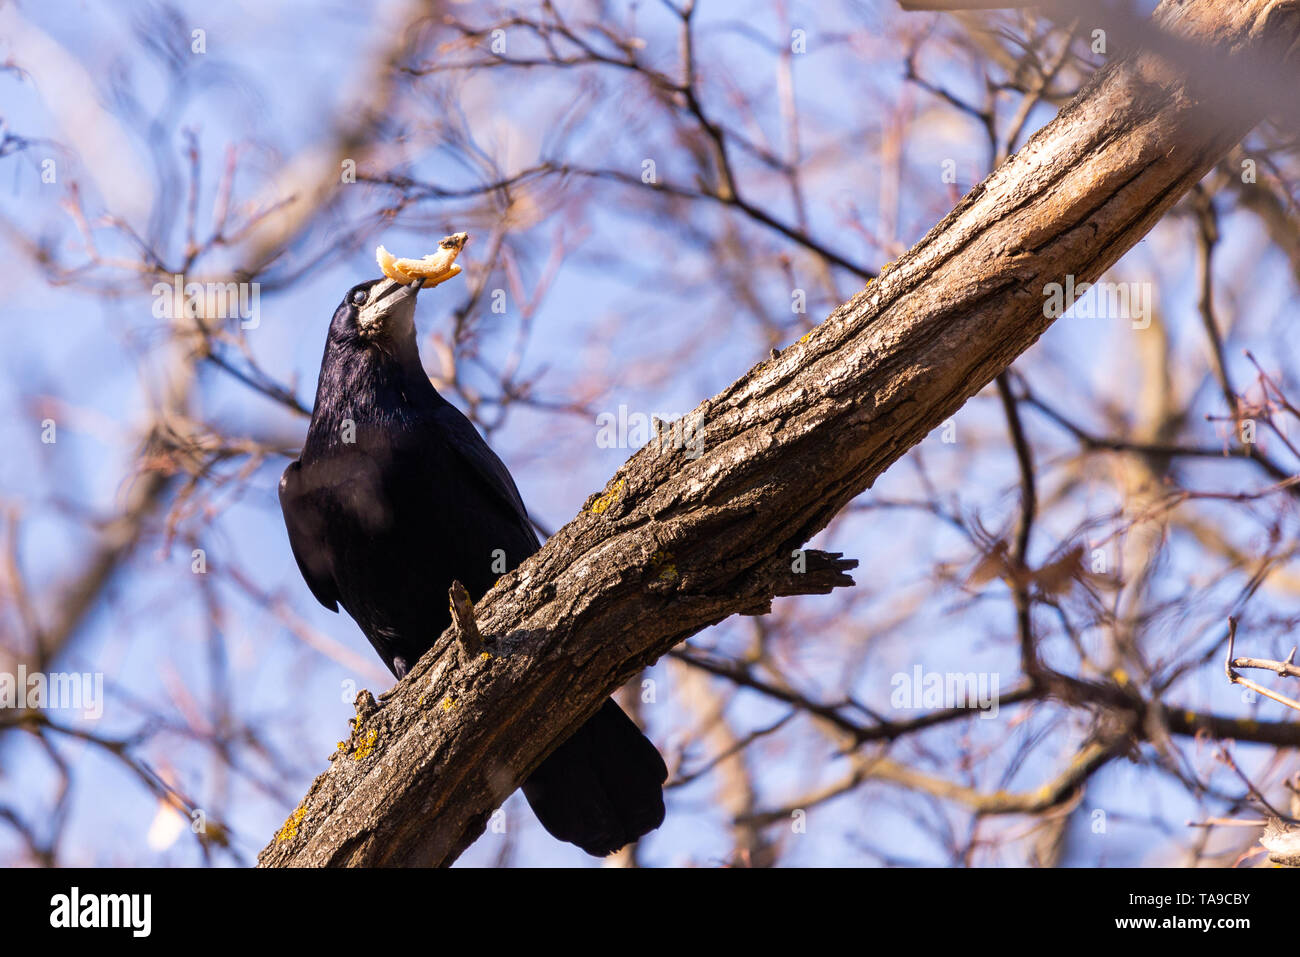 The rook or Corvus frugilegus is a member of the family Corvidae in the passerine order of birds. - Stock Image